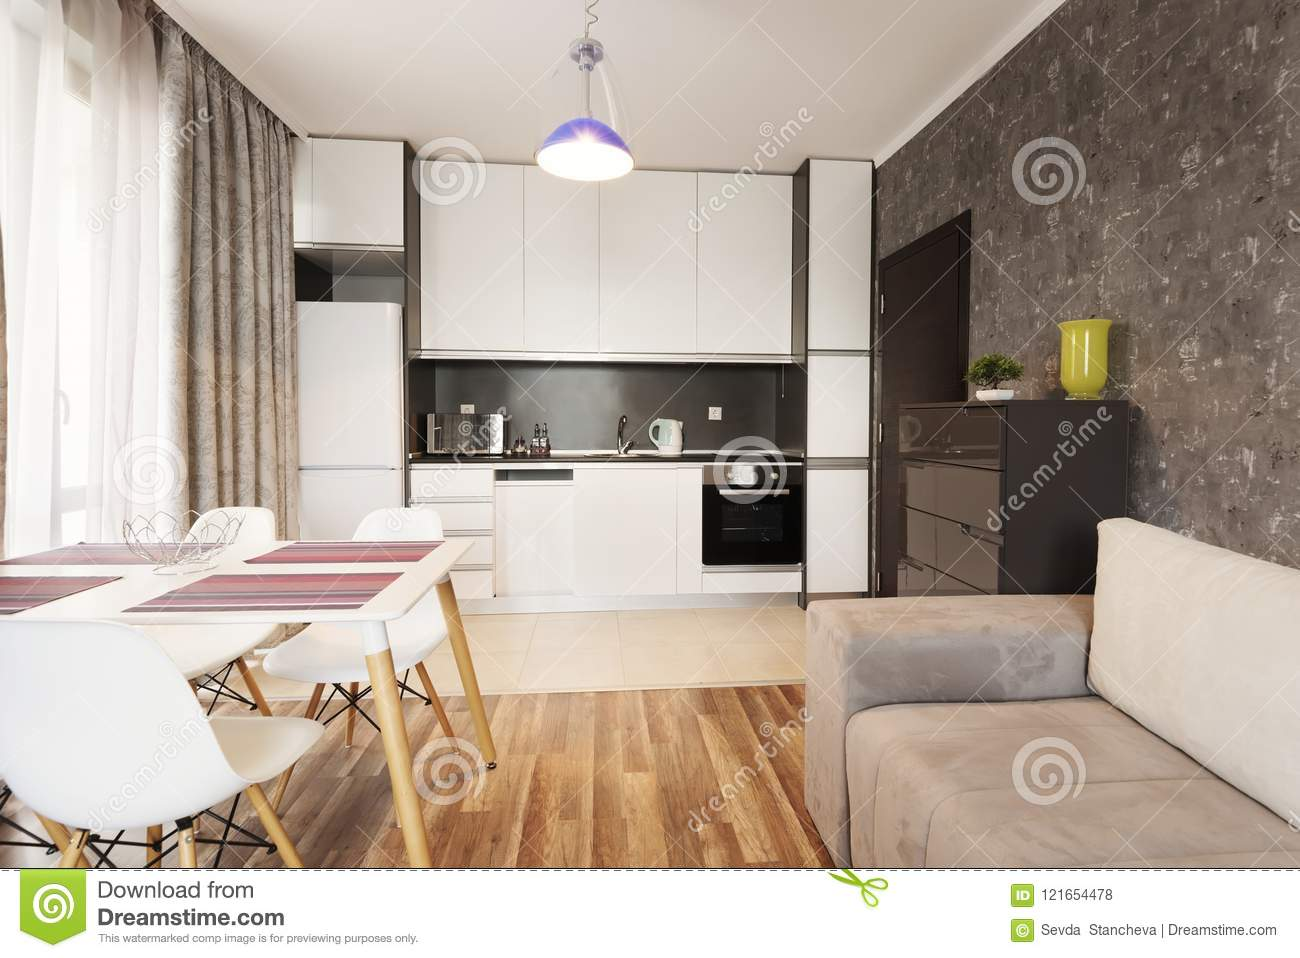 Modern Bright And Cozy Living Room Interior Design With Sofa Dining Table And Kitchen Grey And White Studio Apartment Stock Photo Image Of House Floor 121654478